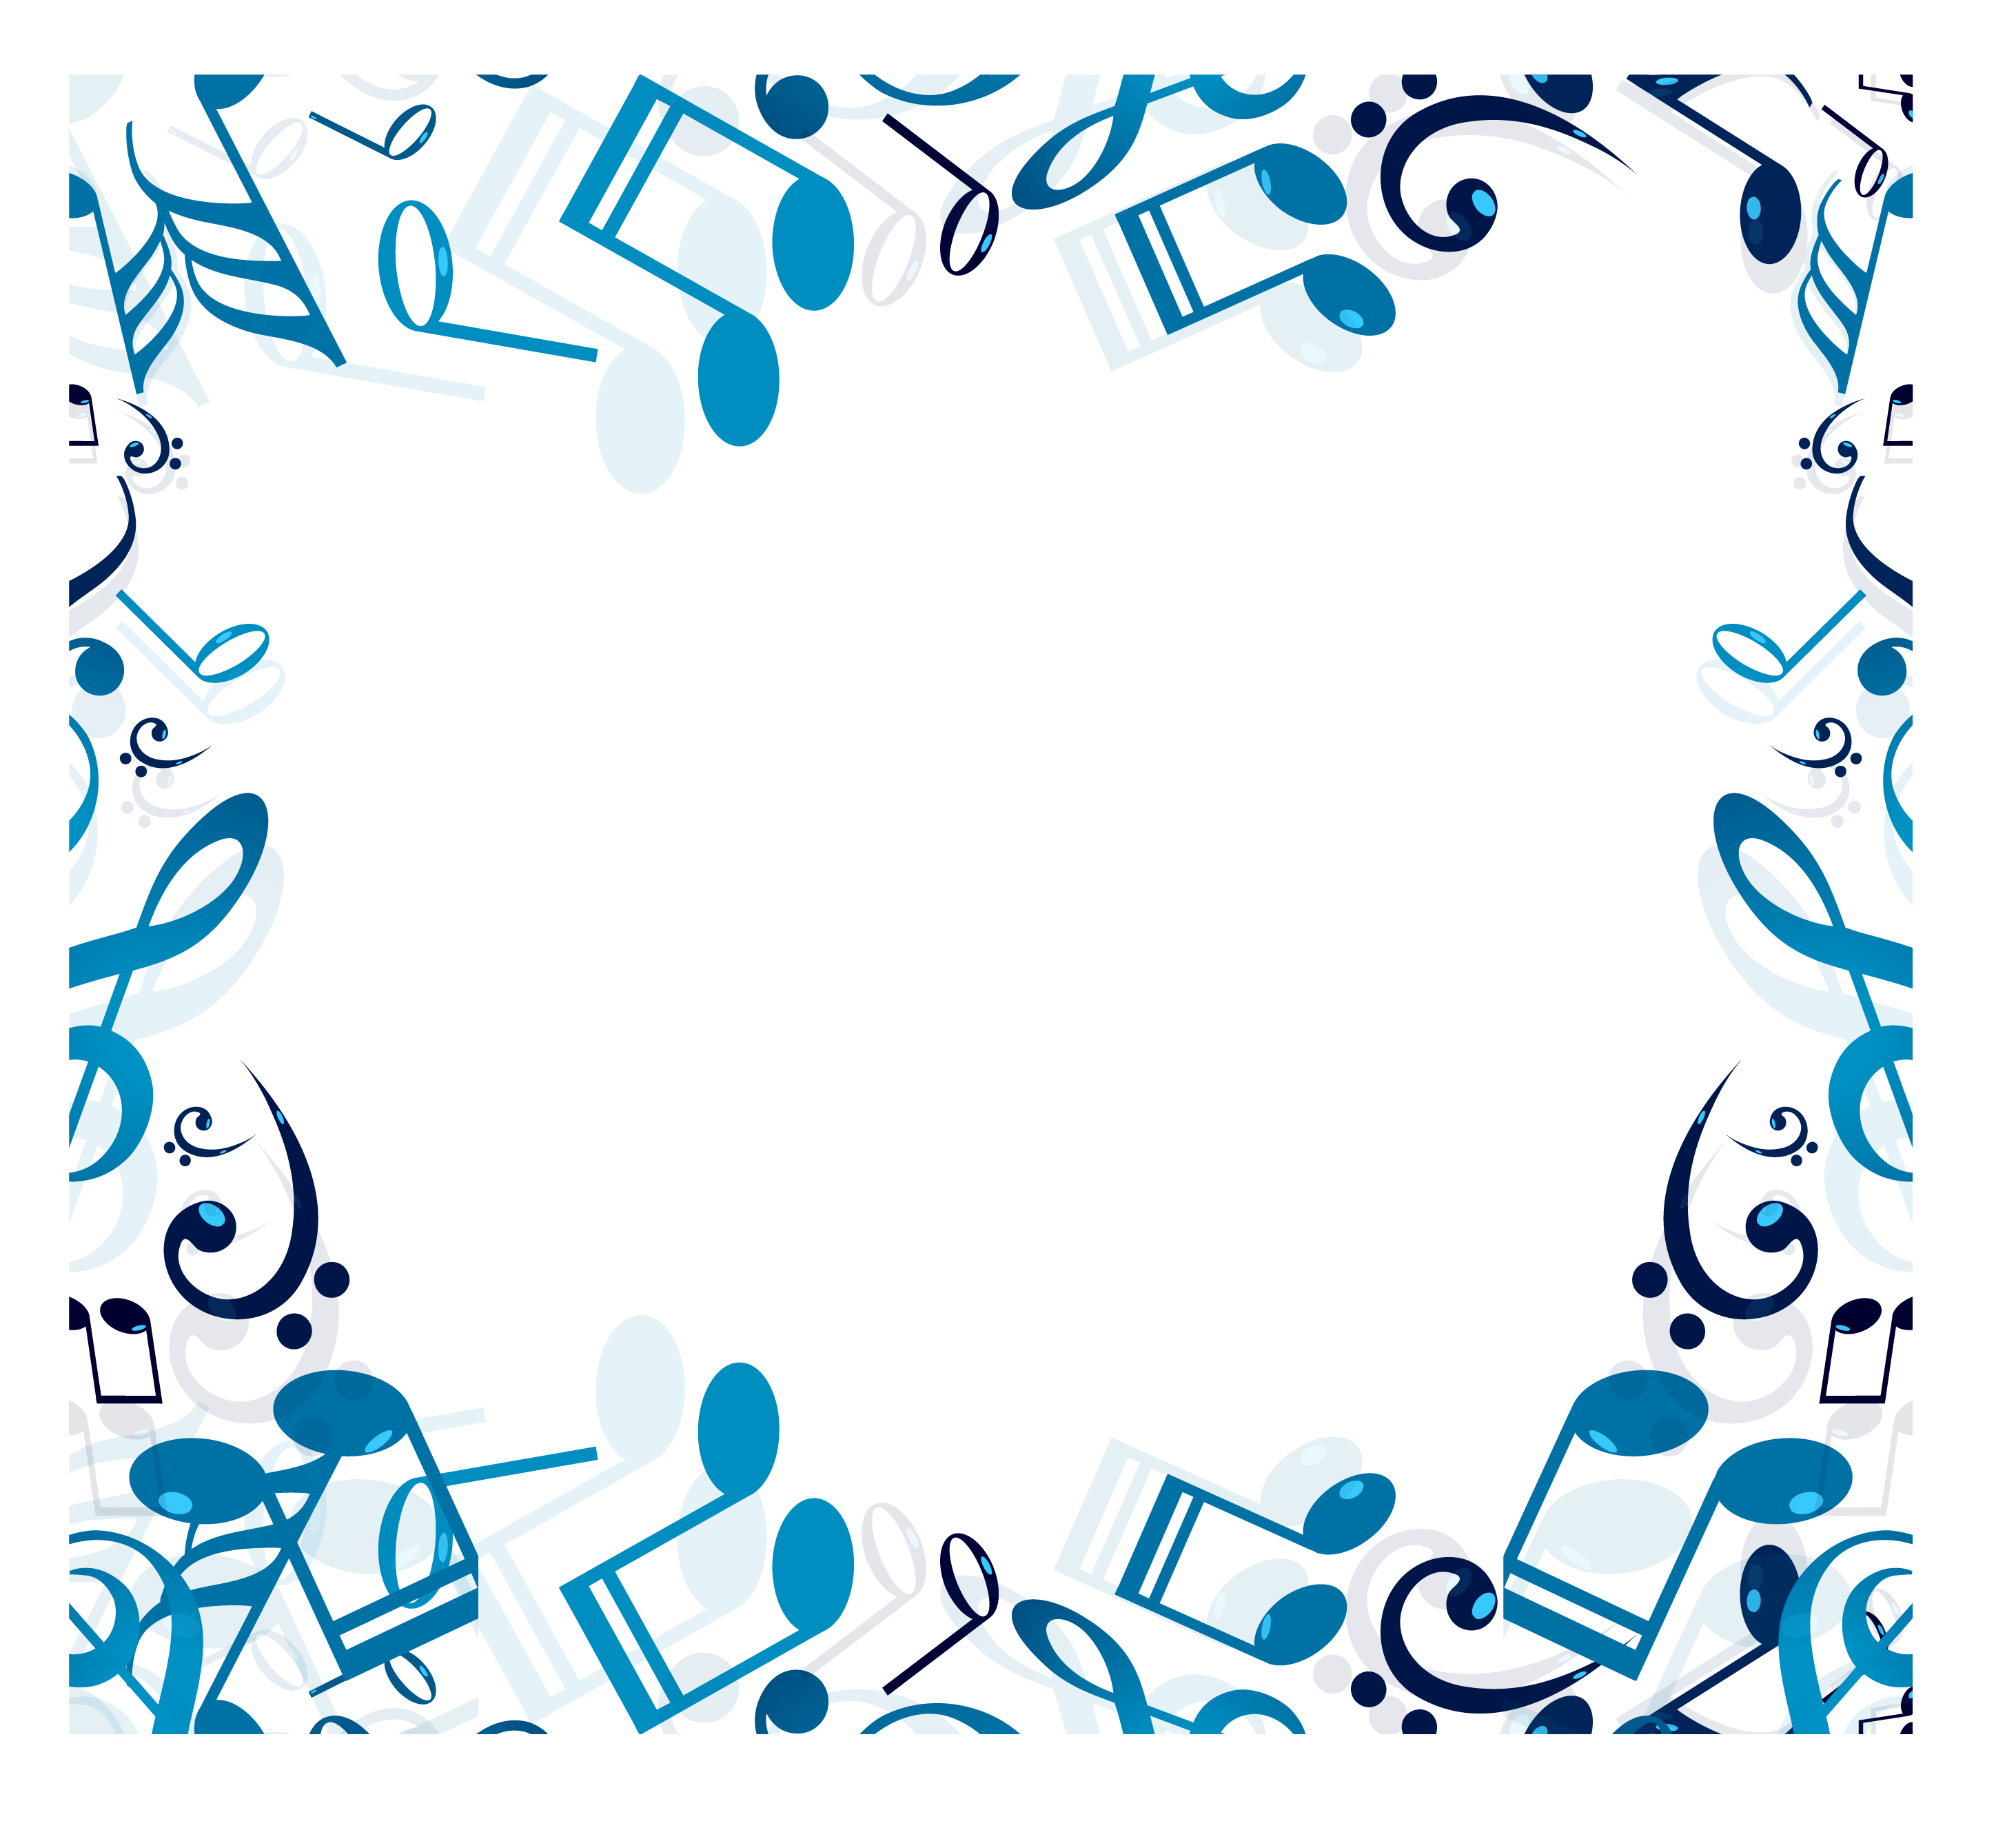 Christmas music border clipart picture royalty free download Musical note Clip art - Blue music note border 2925*2655 transprent ... picture royalty free download